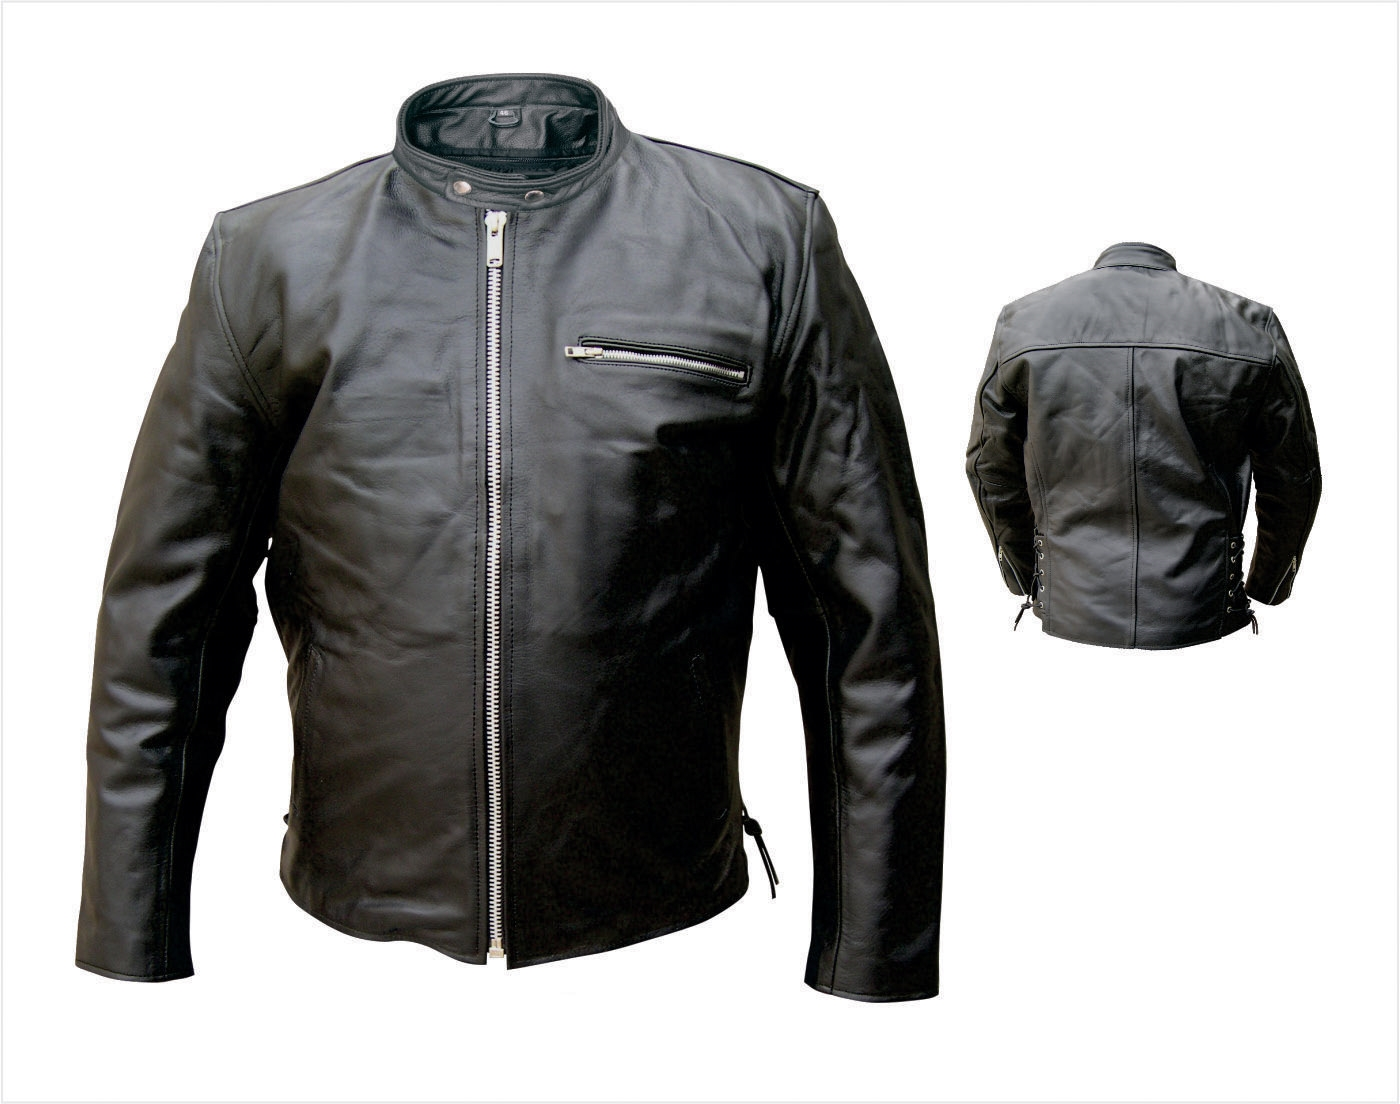 e3c0140b0a6 Men s Basic Scooter jacket with Euro collar. Zipout liner